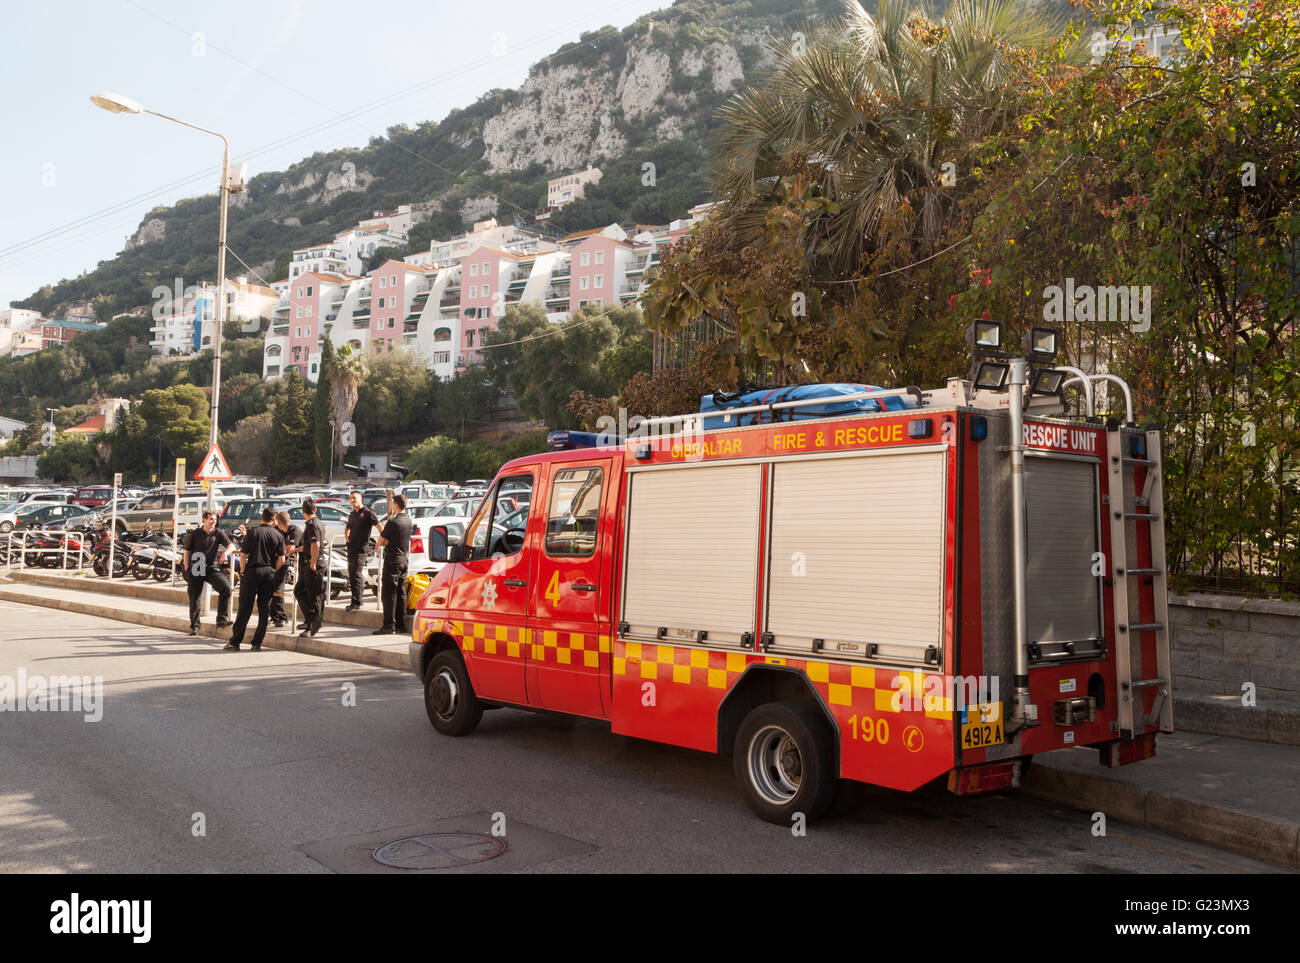 Gibraltar Fire engine and staff of the Gibraltar Fire Service, Gibraltar, Europe - Stock Image